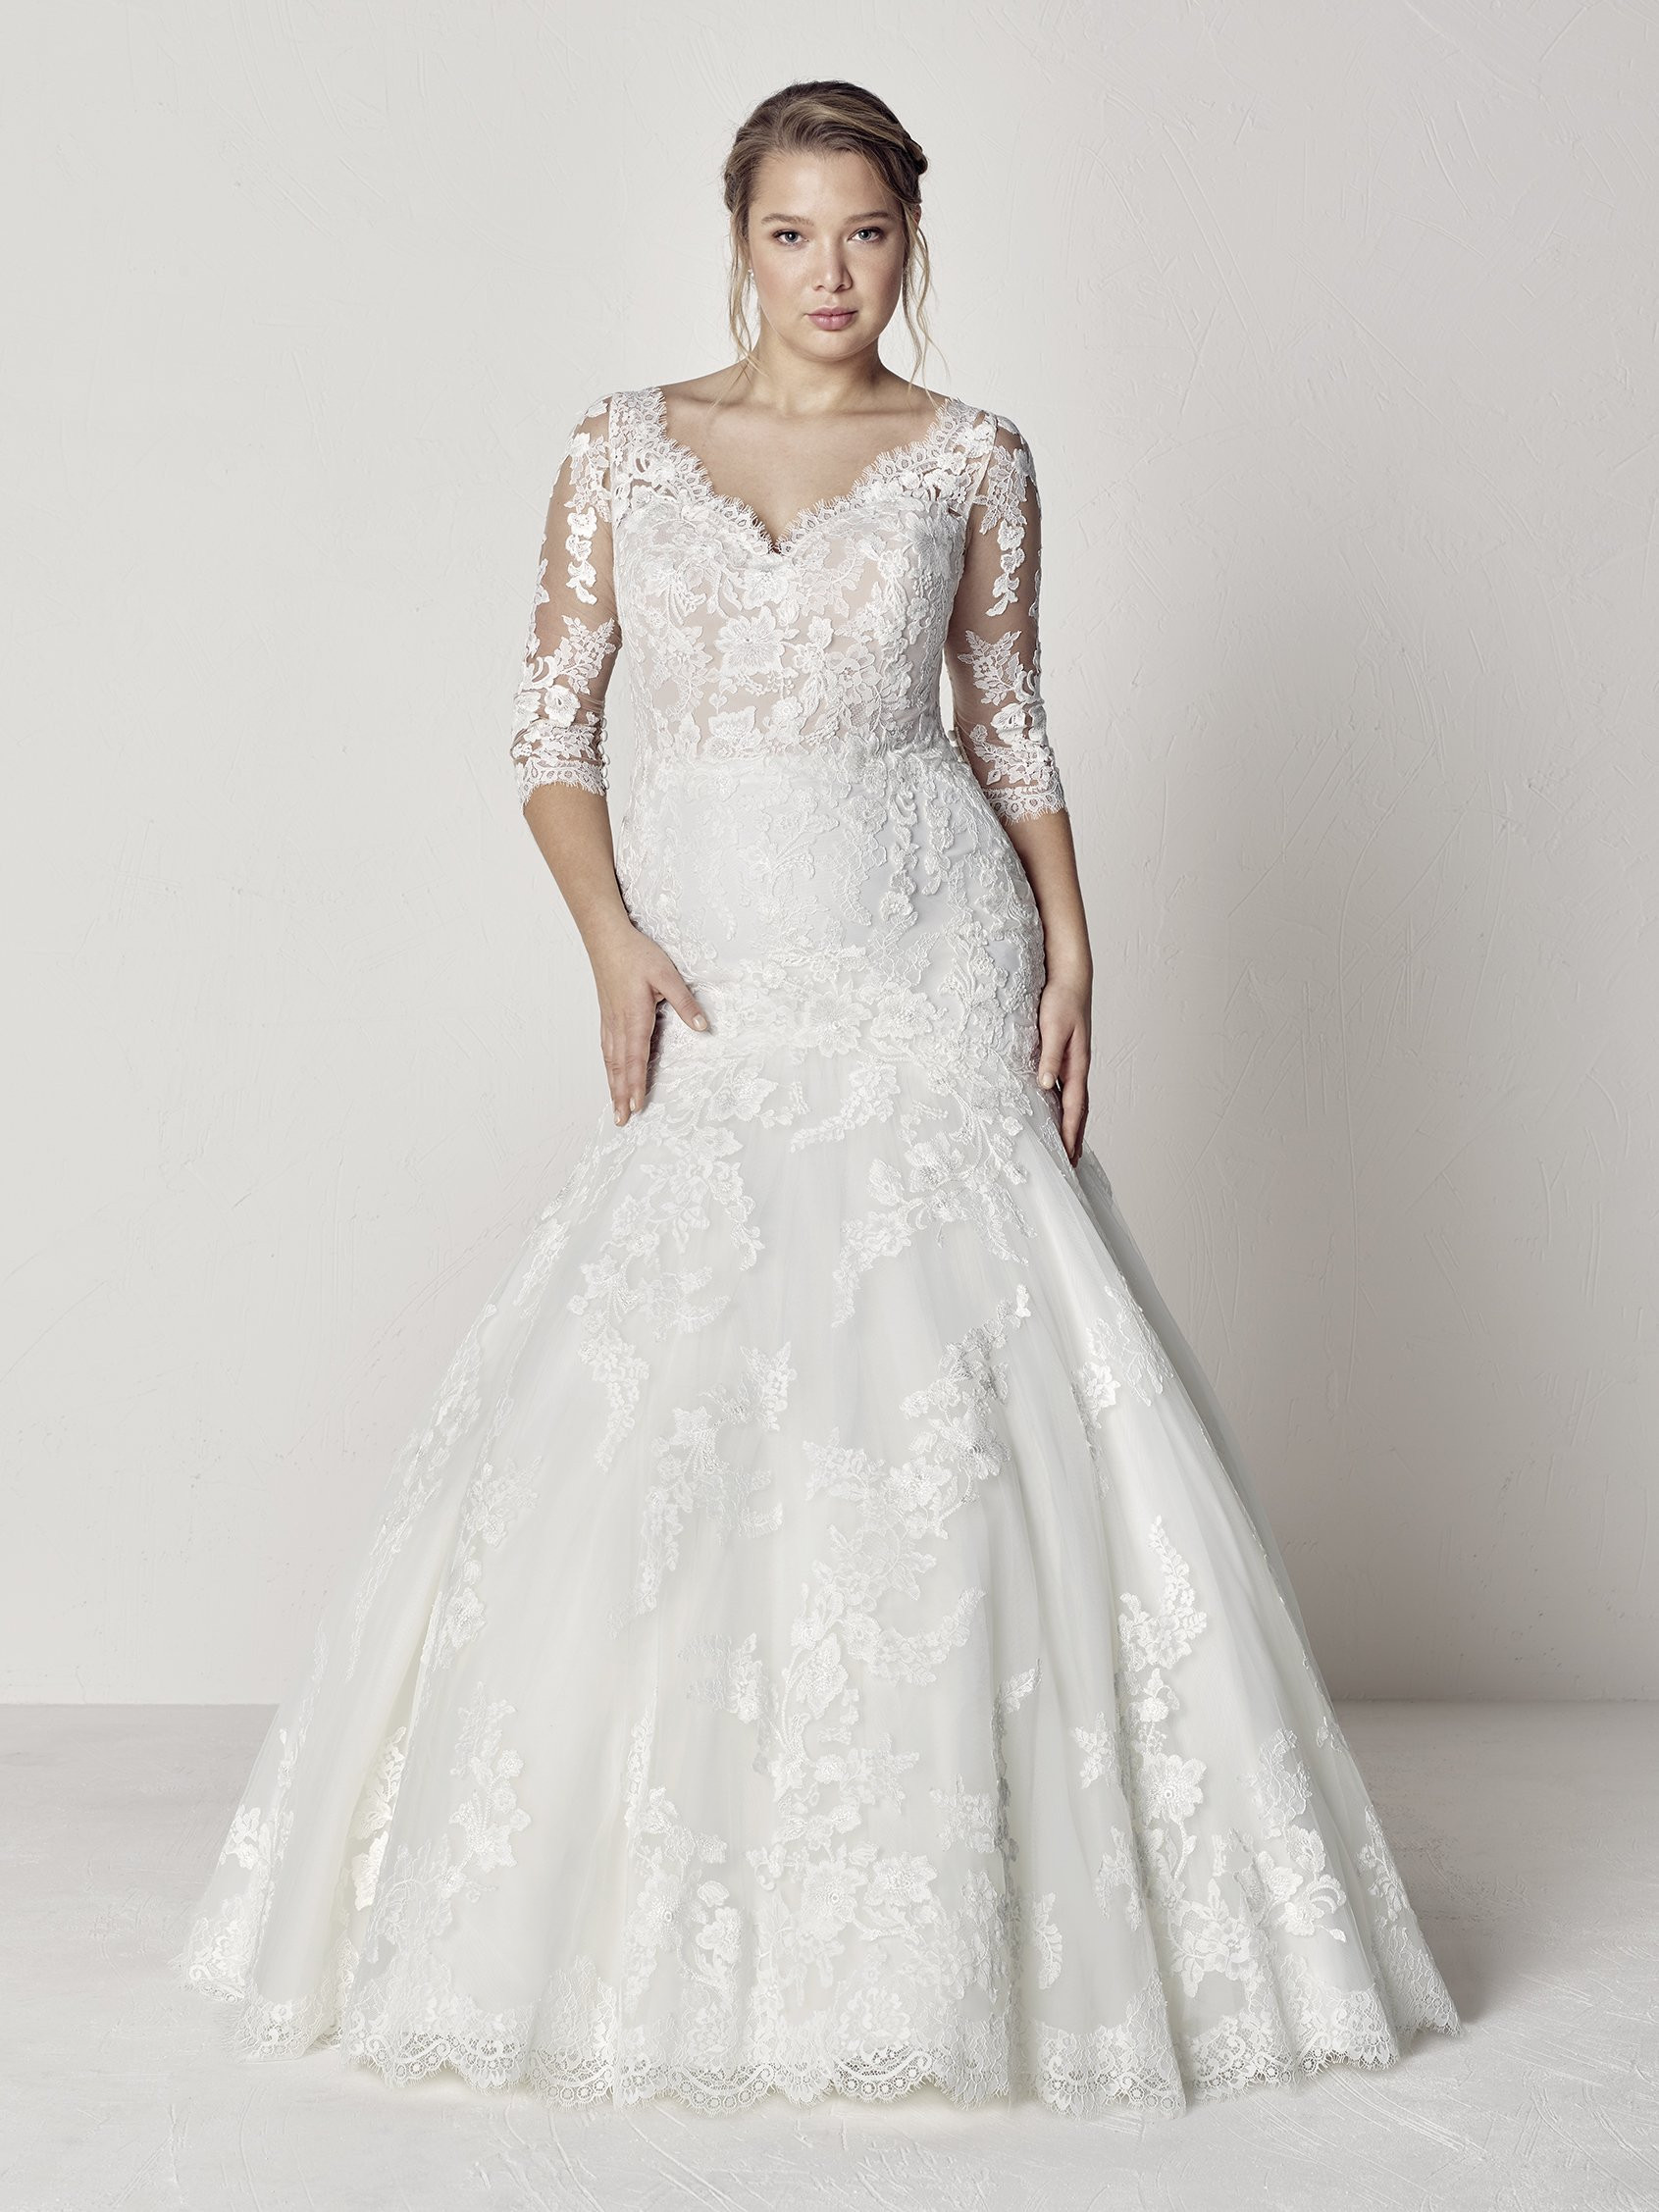 Scalloped V Neck 34 Sleeve Lace Fit And Flare Wedding Dress